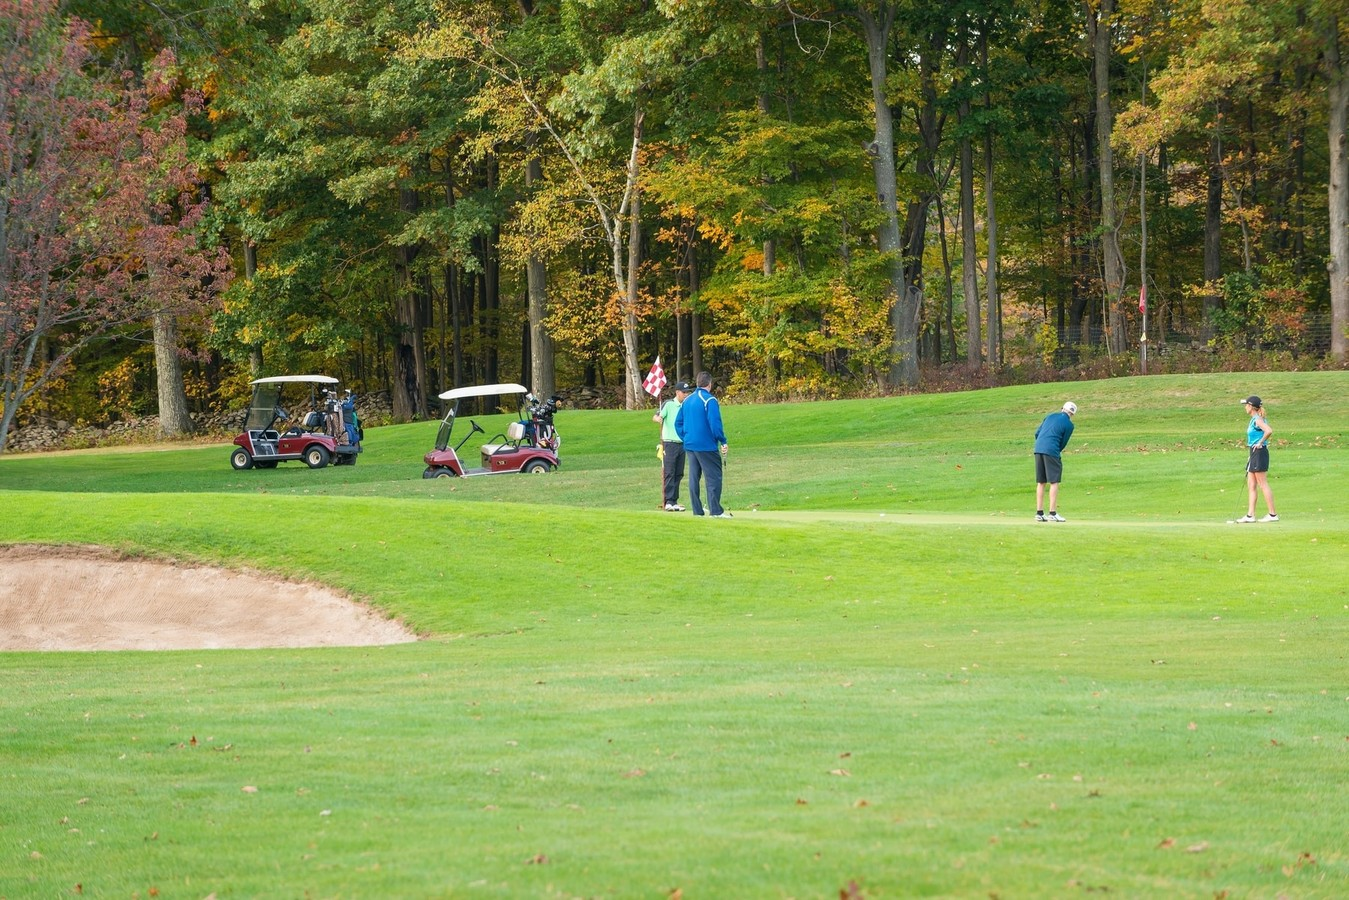 Golfing in the Great Northern Catskills of Greene County